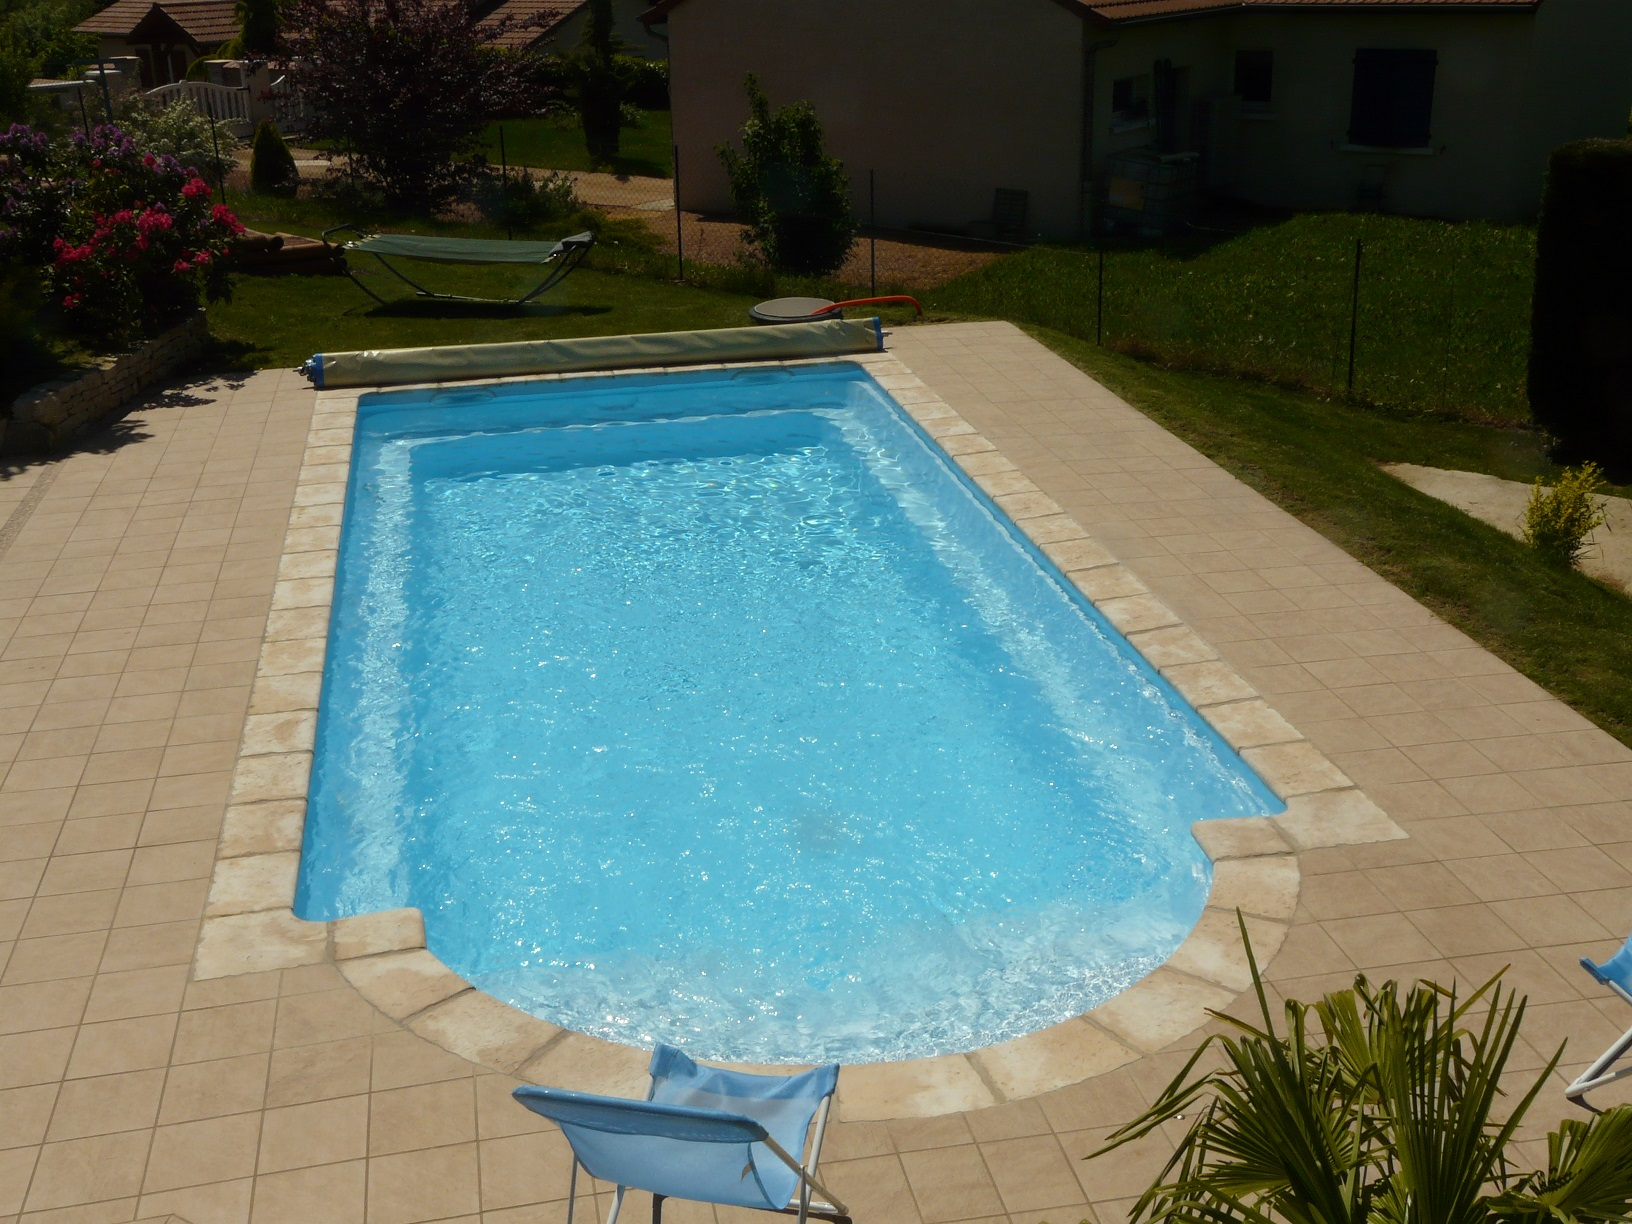 Dalle en b ton arm bordure de trottoir b ton d sactiv for Construction piscine